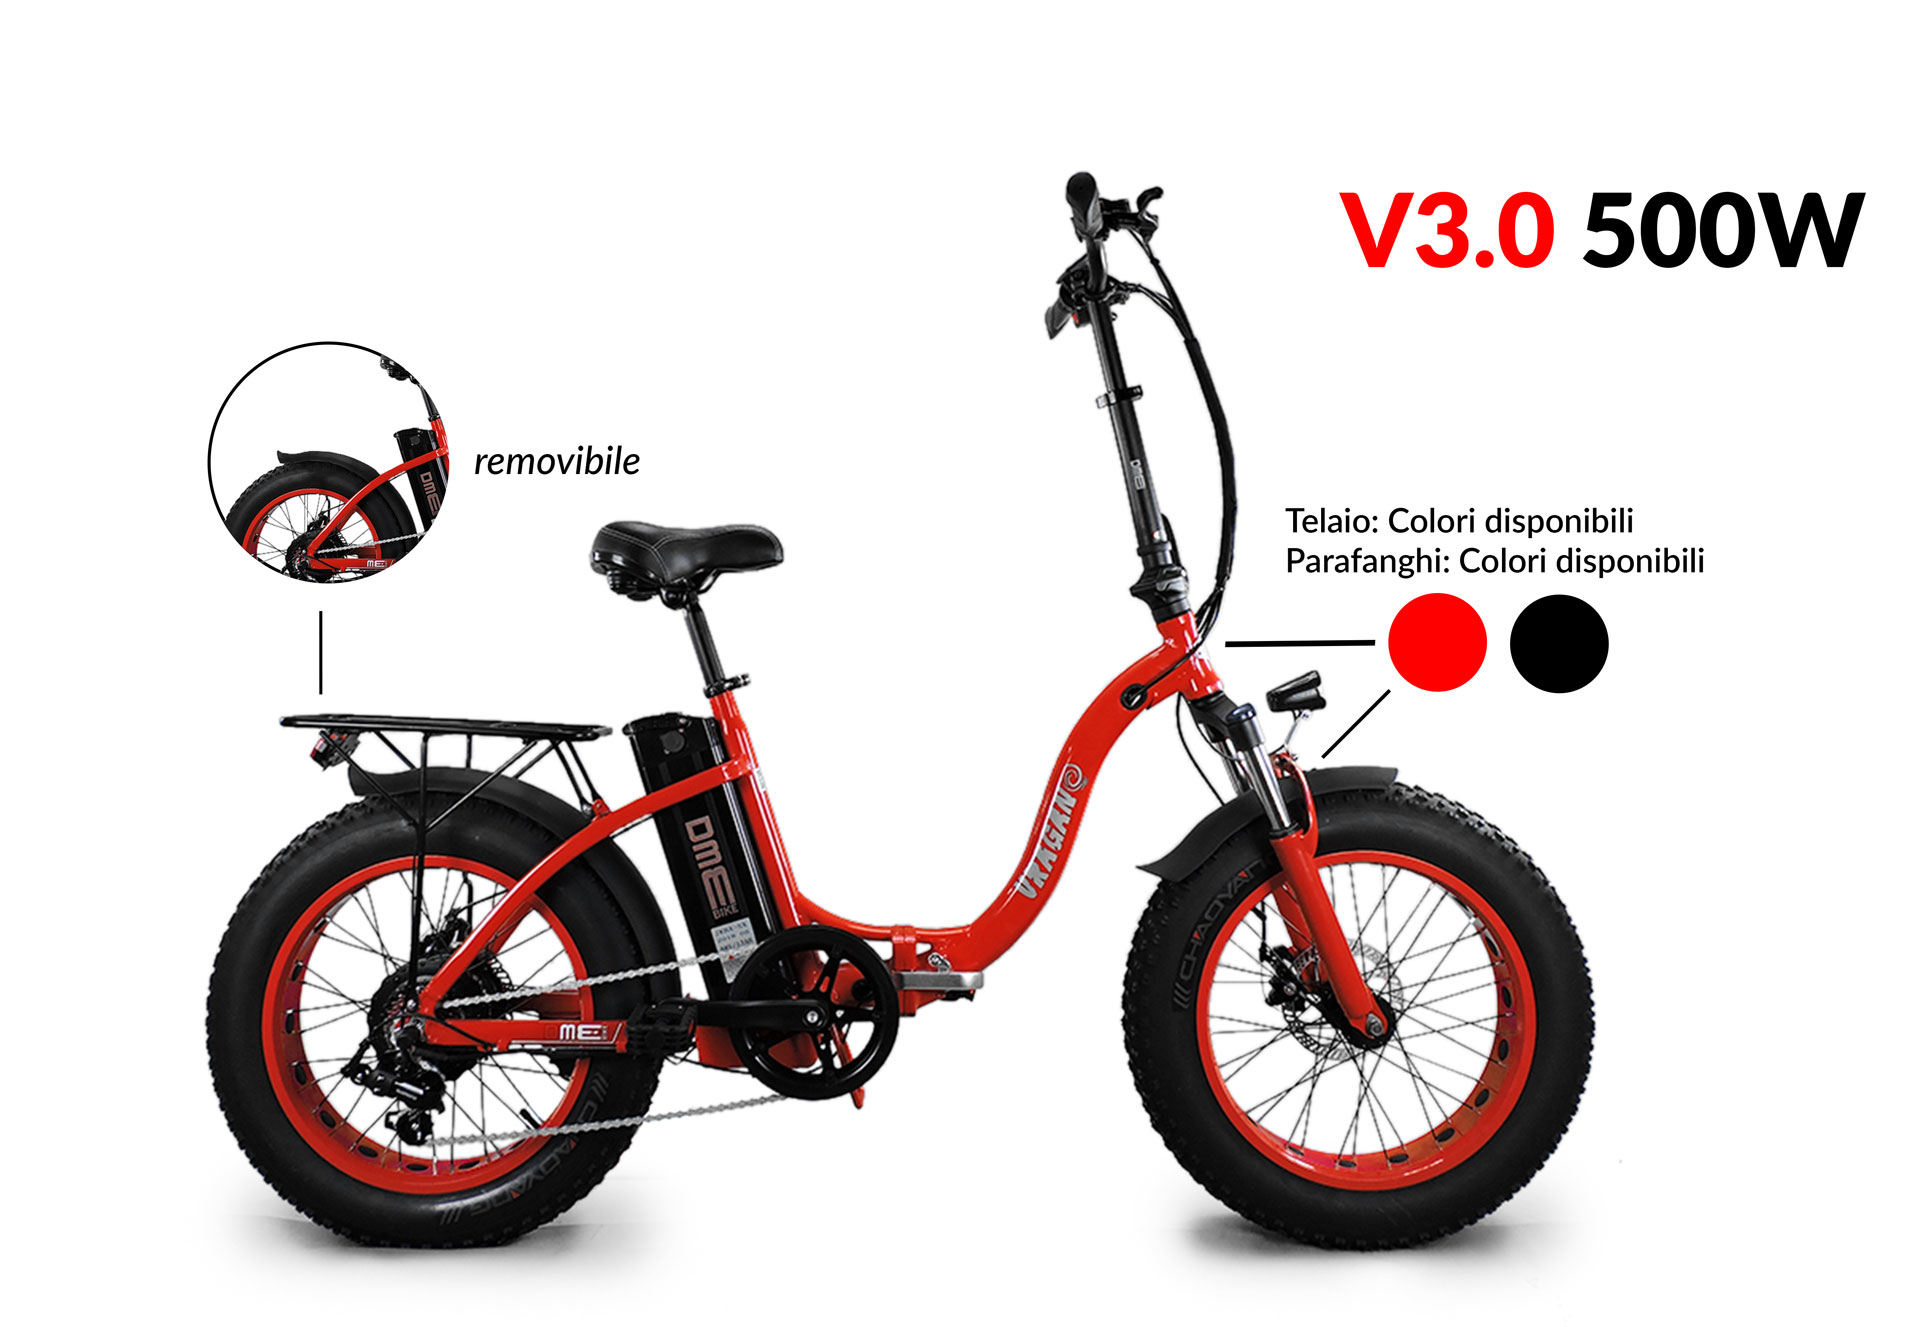 fat-bike elettrica 250 watt